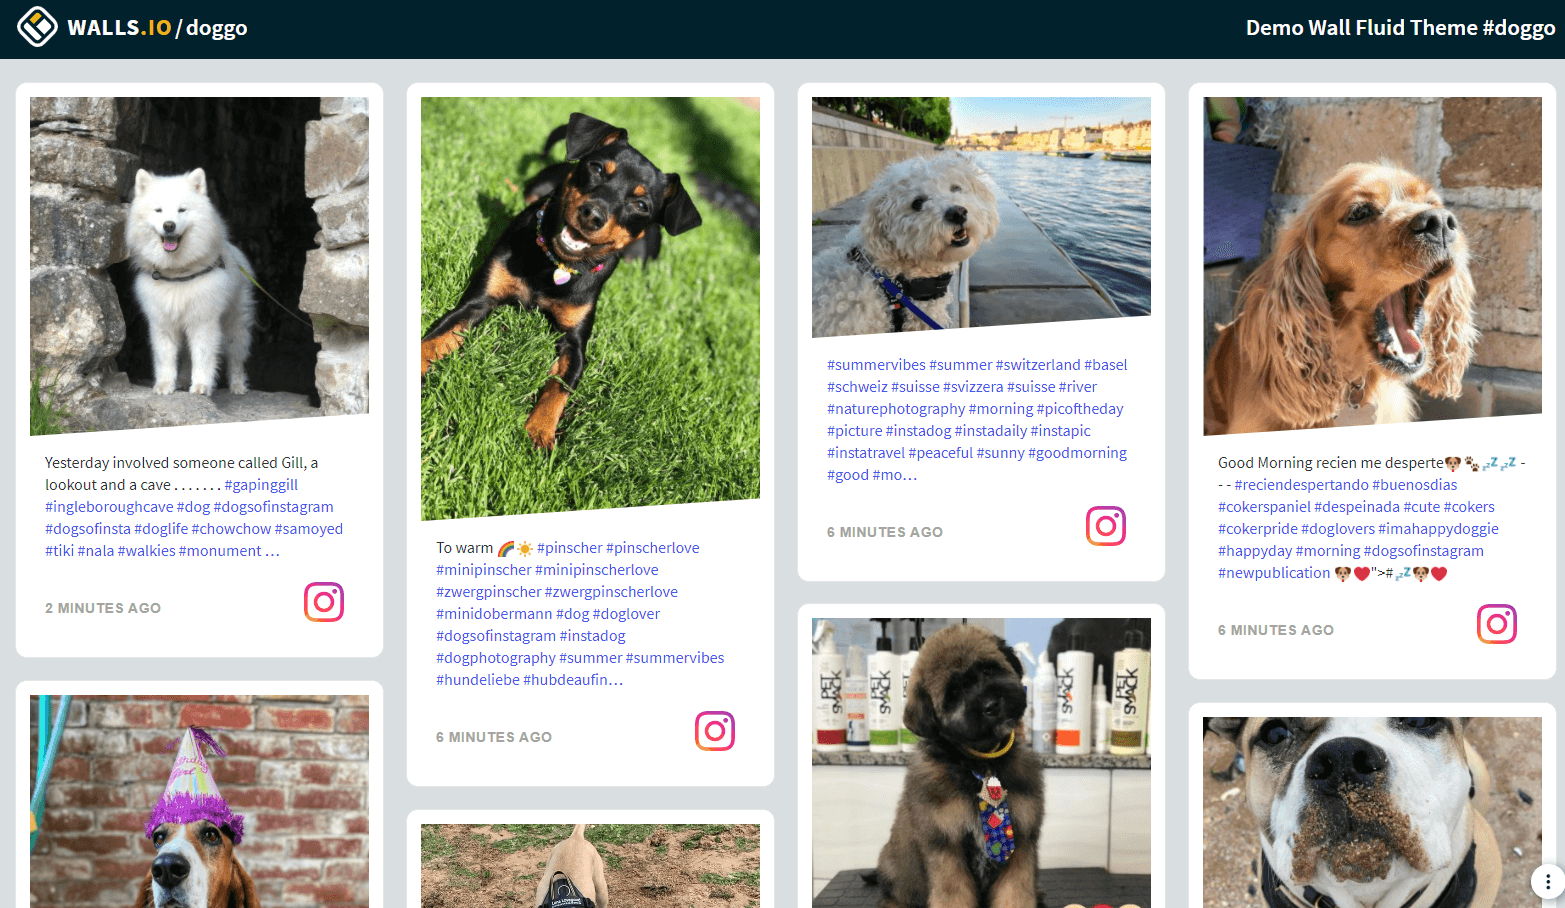 An example of how to customise an Instagram feed embed on a website using the Walls.io Fluid theme and CSS. A social feed with dog photos.